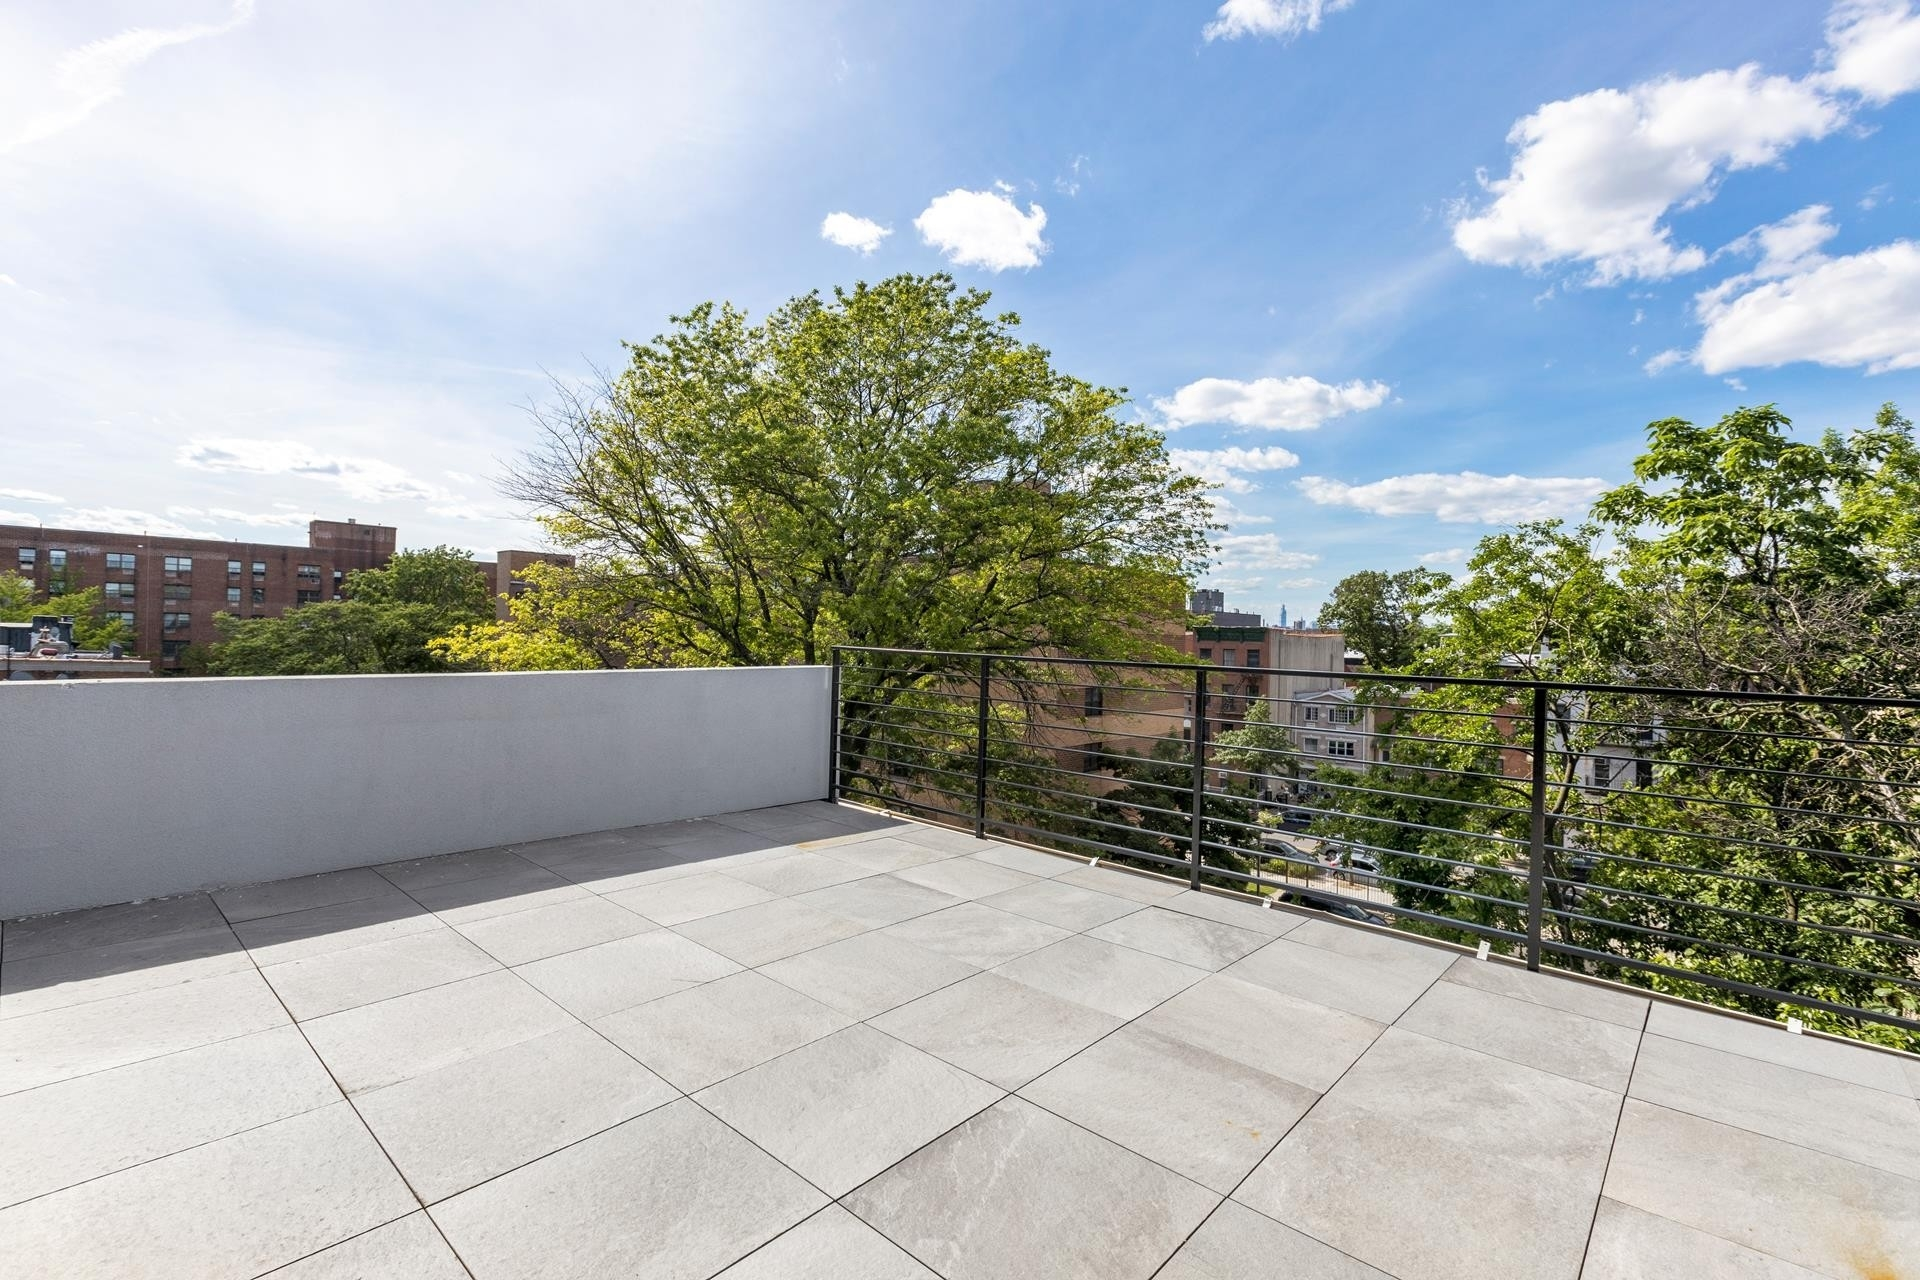 10. Condominiums for Sale at 695 Monroe St, 4 Bedford Stuyvesant, Brooklyn, NY 11221